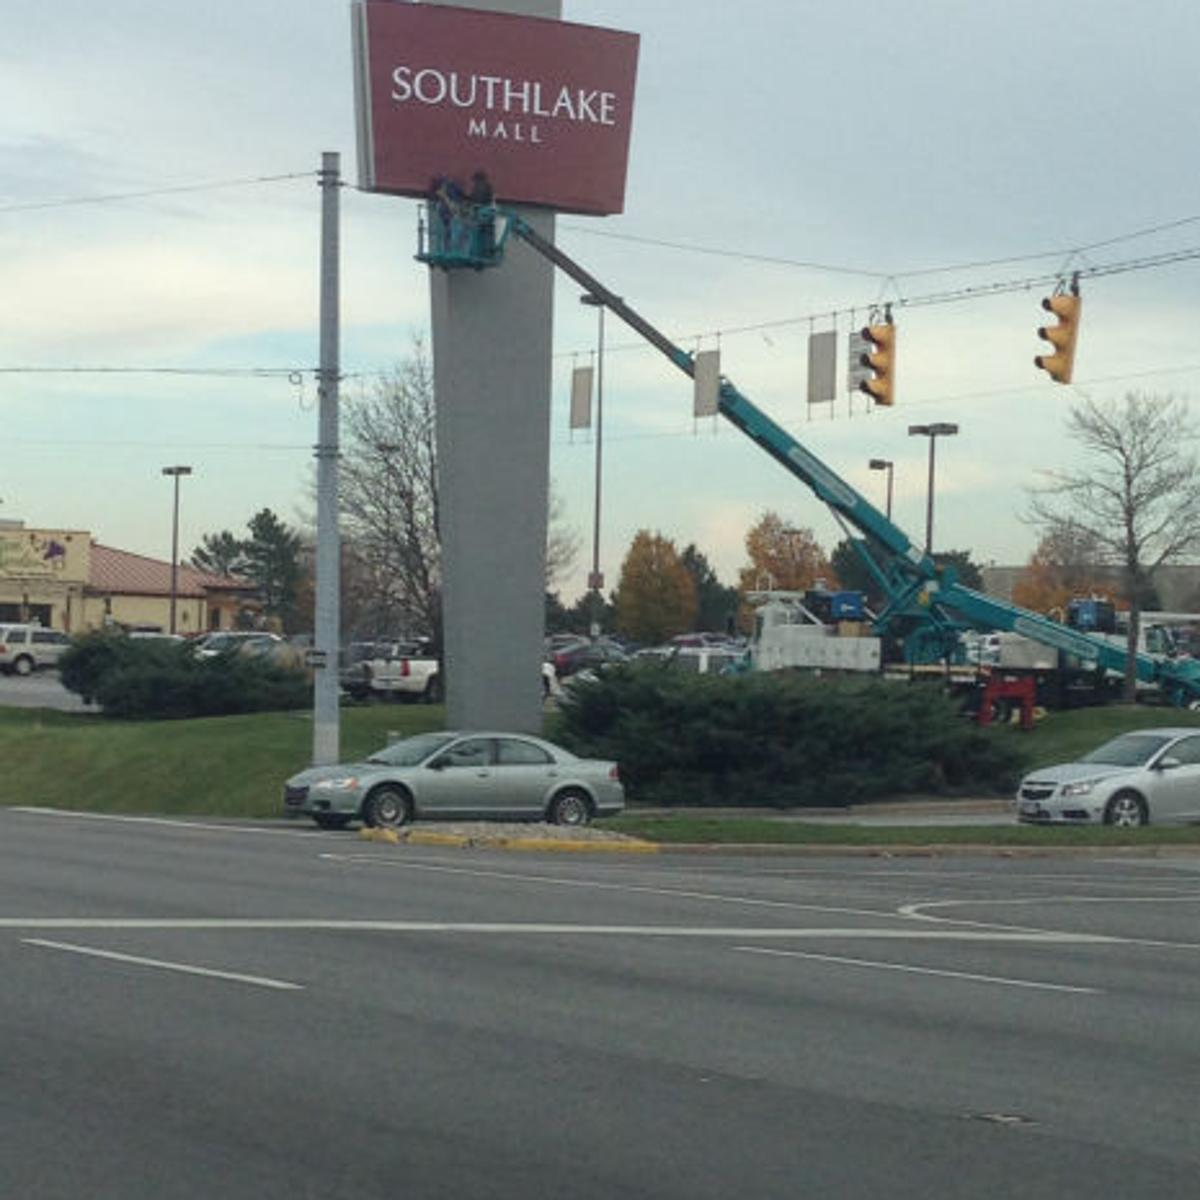 UPDATE: Southlake Mall Sears building put up for sale | Northwest